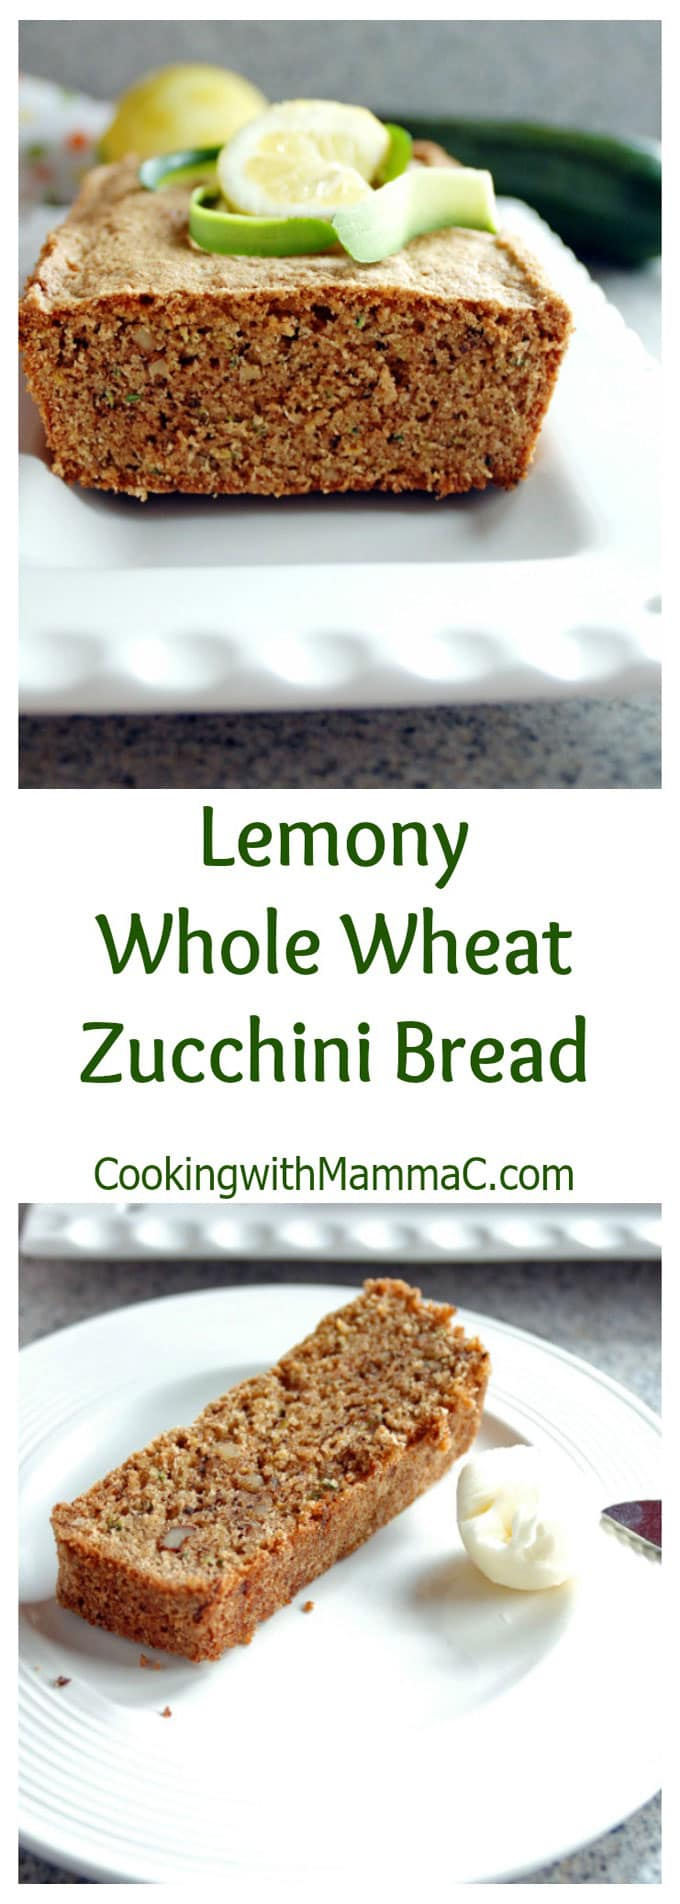 "The words ""Lemony Whole Wheat Zucchini Bread\"" separating two photos of it"